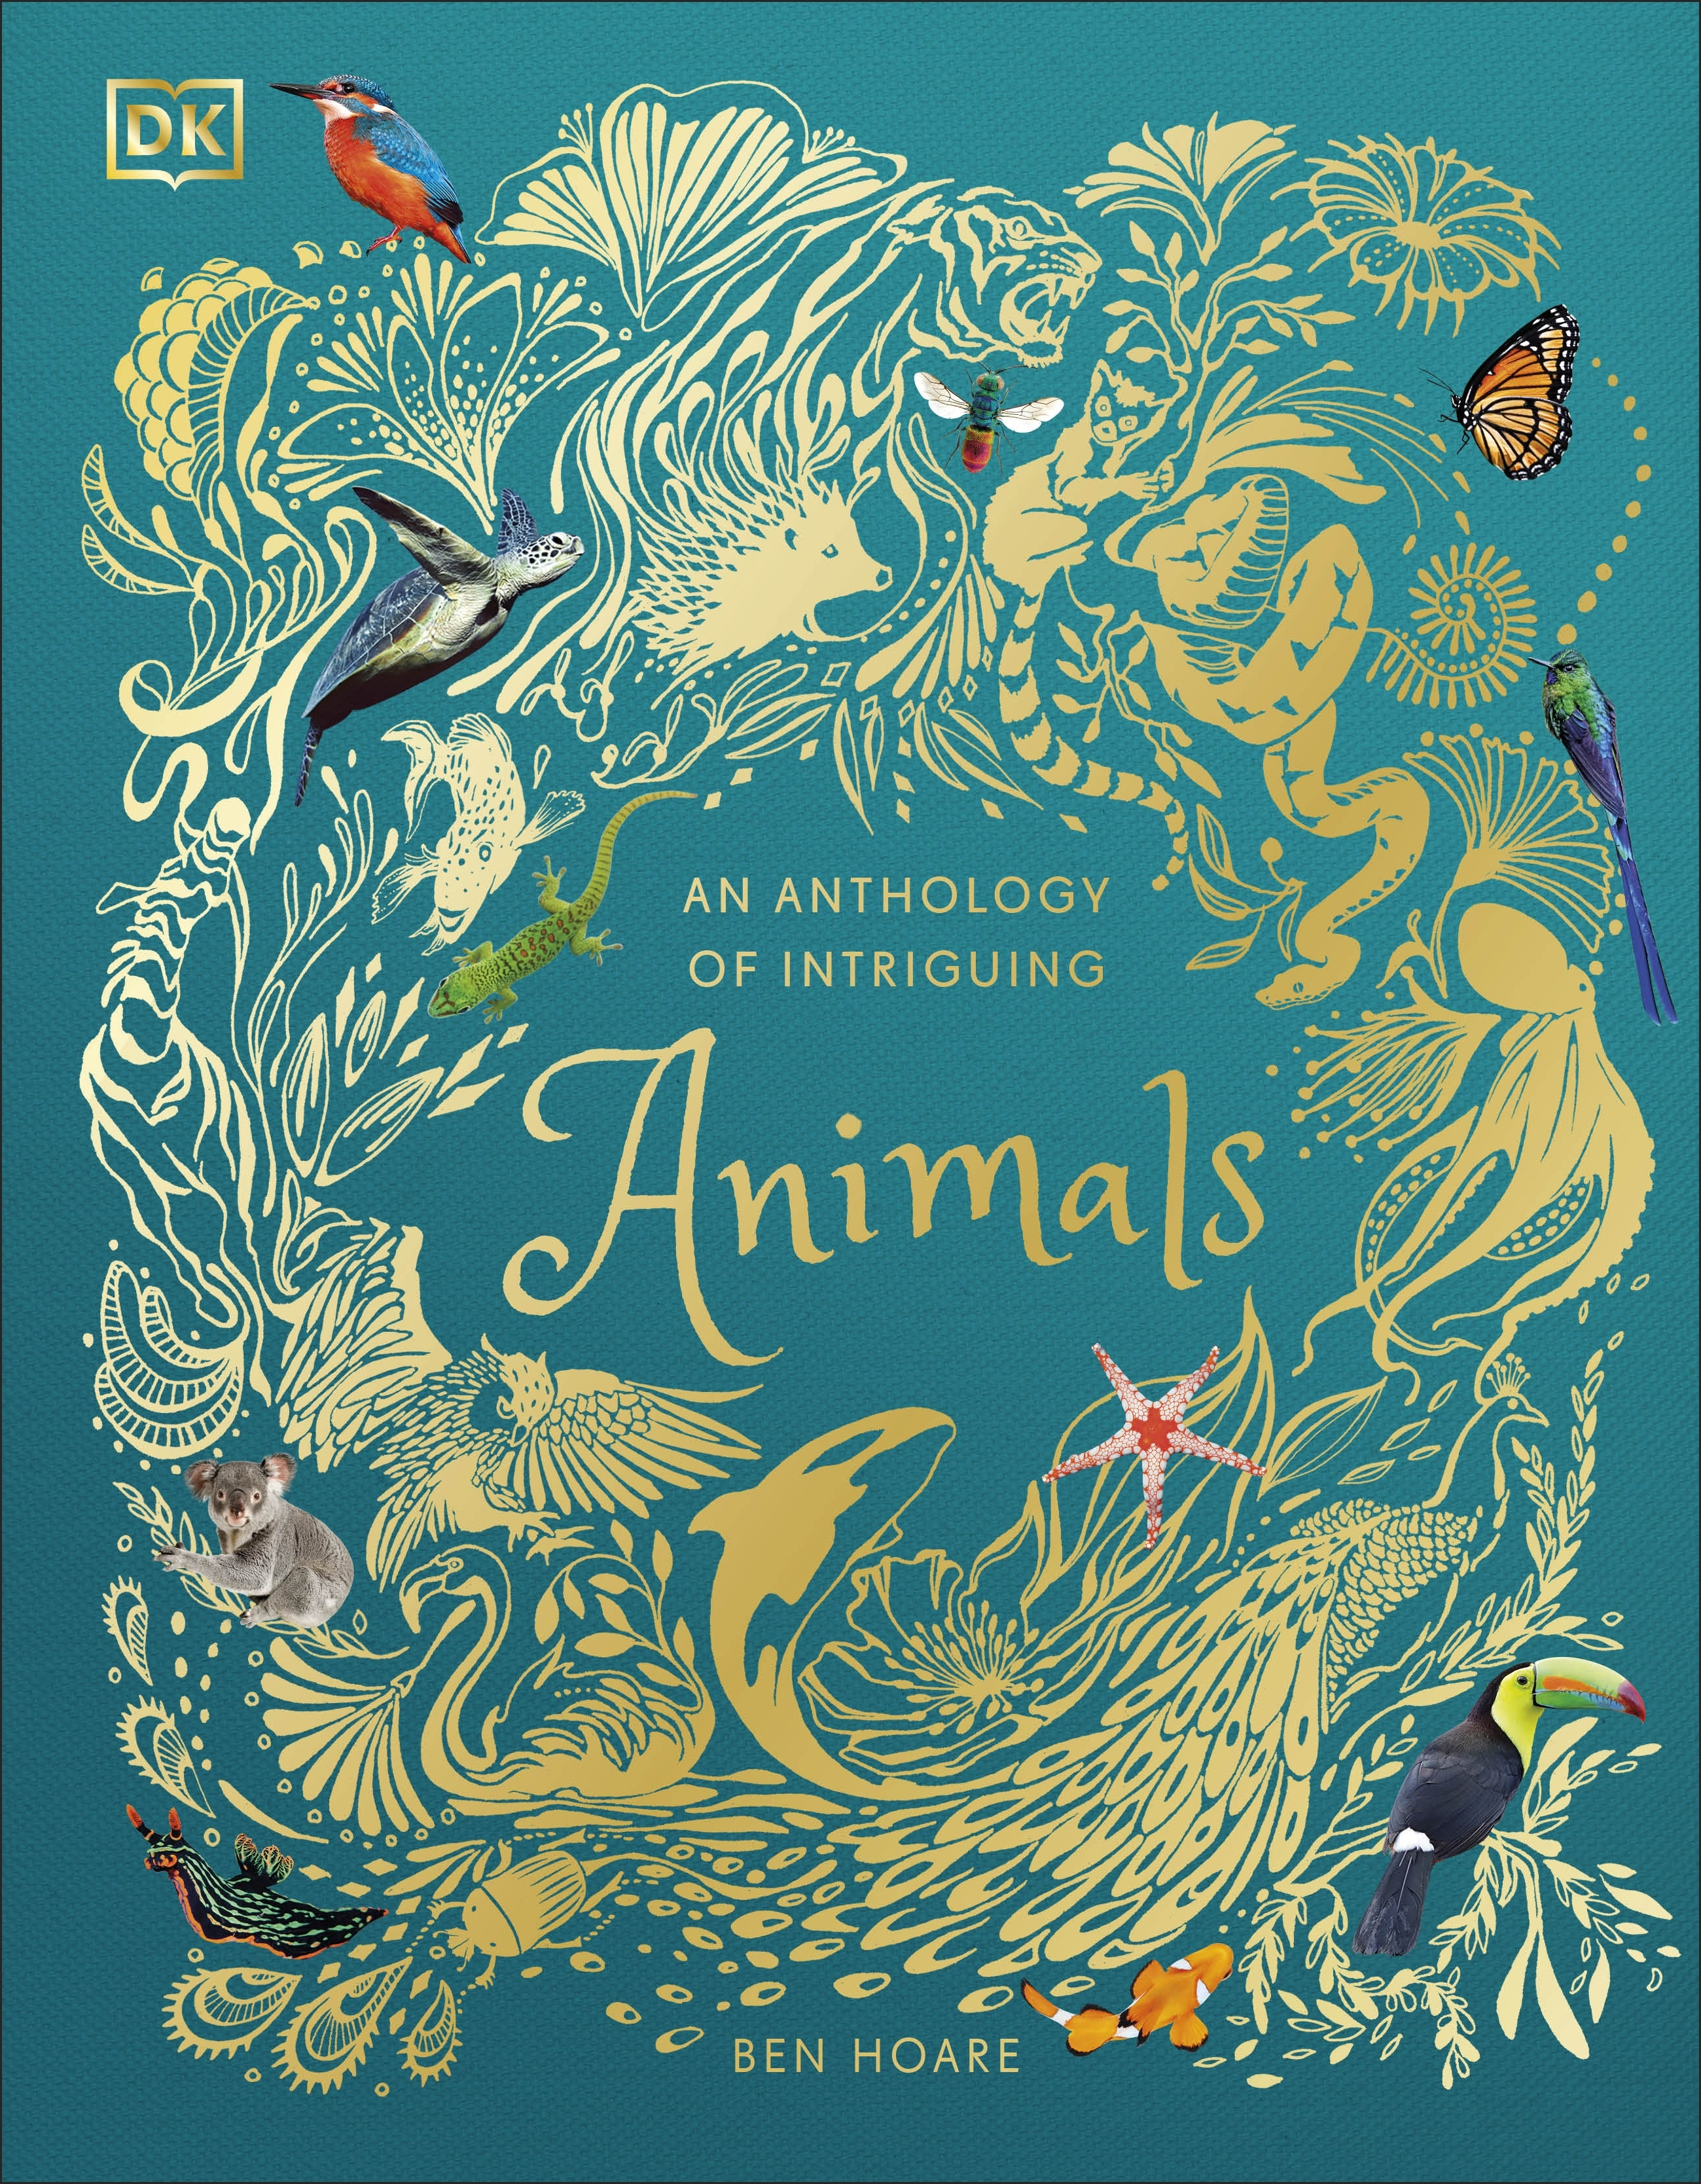 4a531631b60f An Anthology of Intriguing Animals by DK - Penguin Books New Zealand